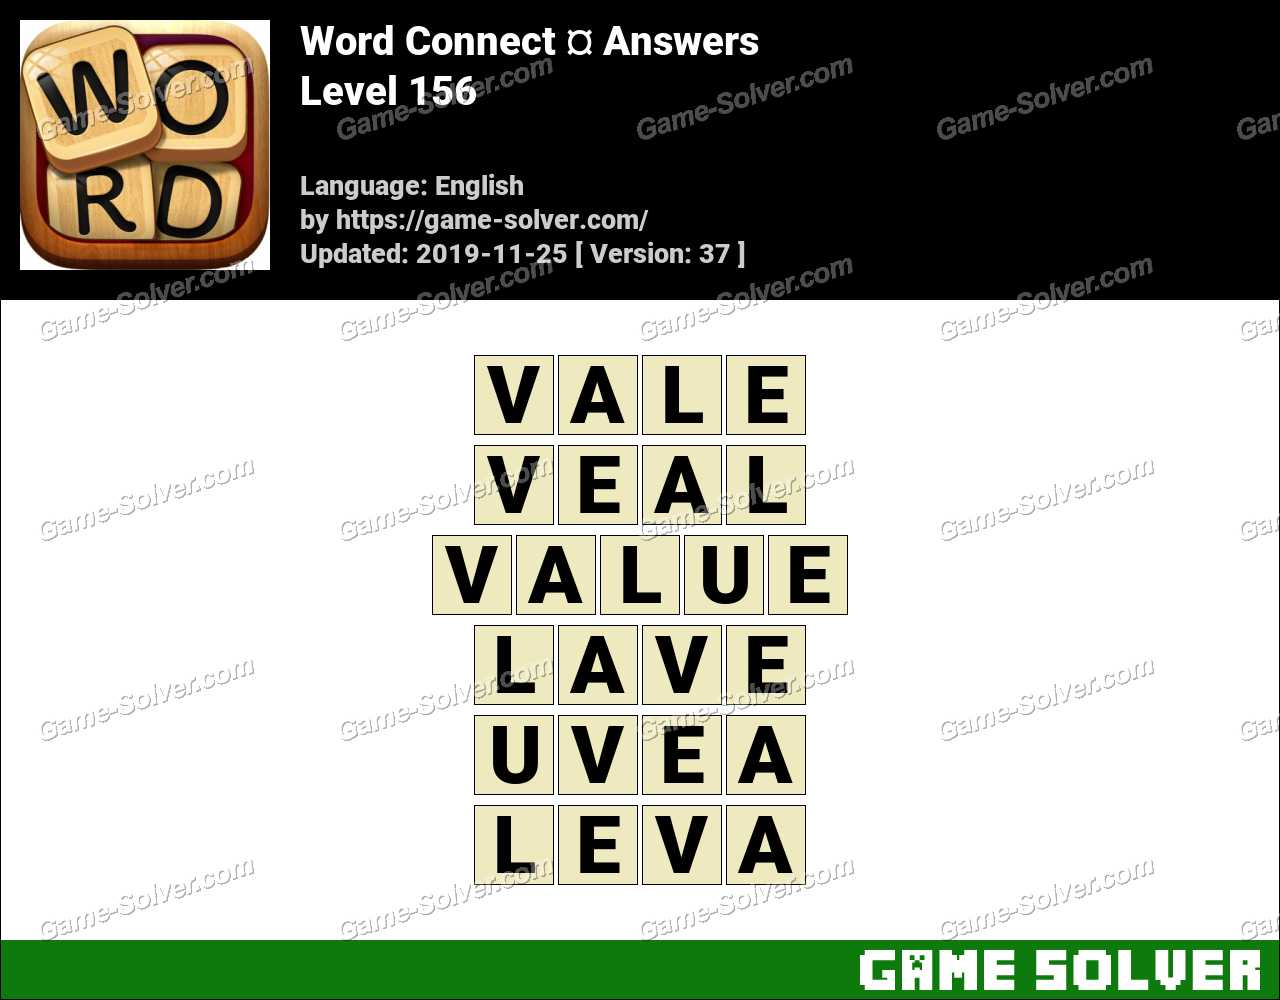 Word Connect Level 156 Answers